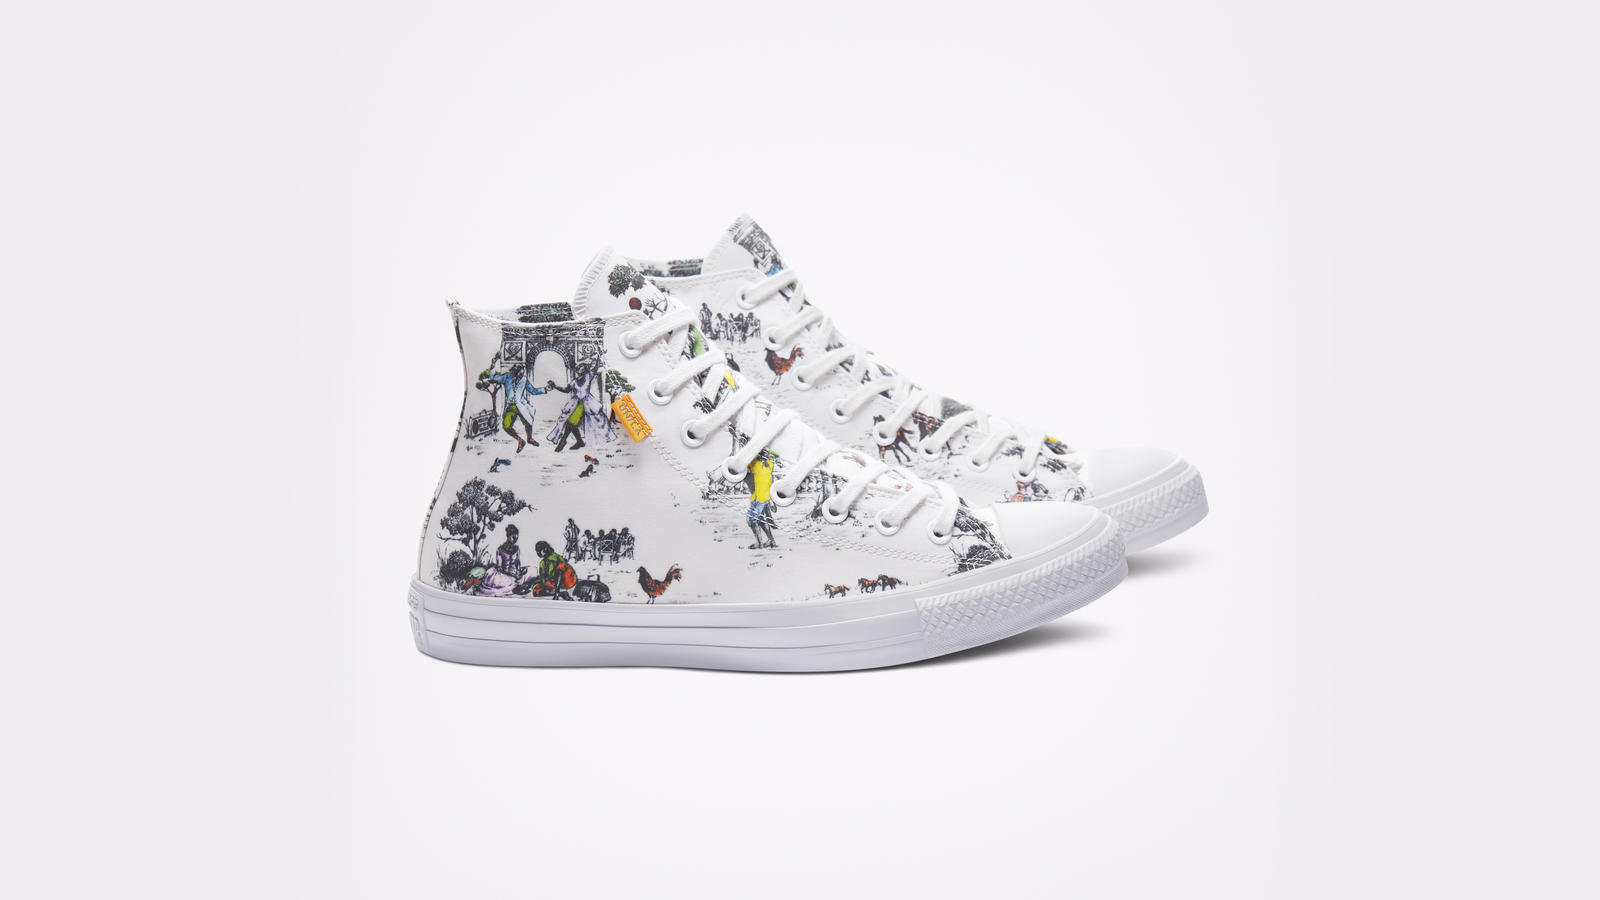 Converse x UNION x Sheila Bridges Harlem Toile Collaboration 15